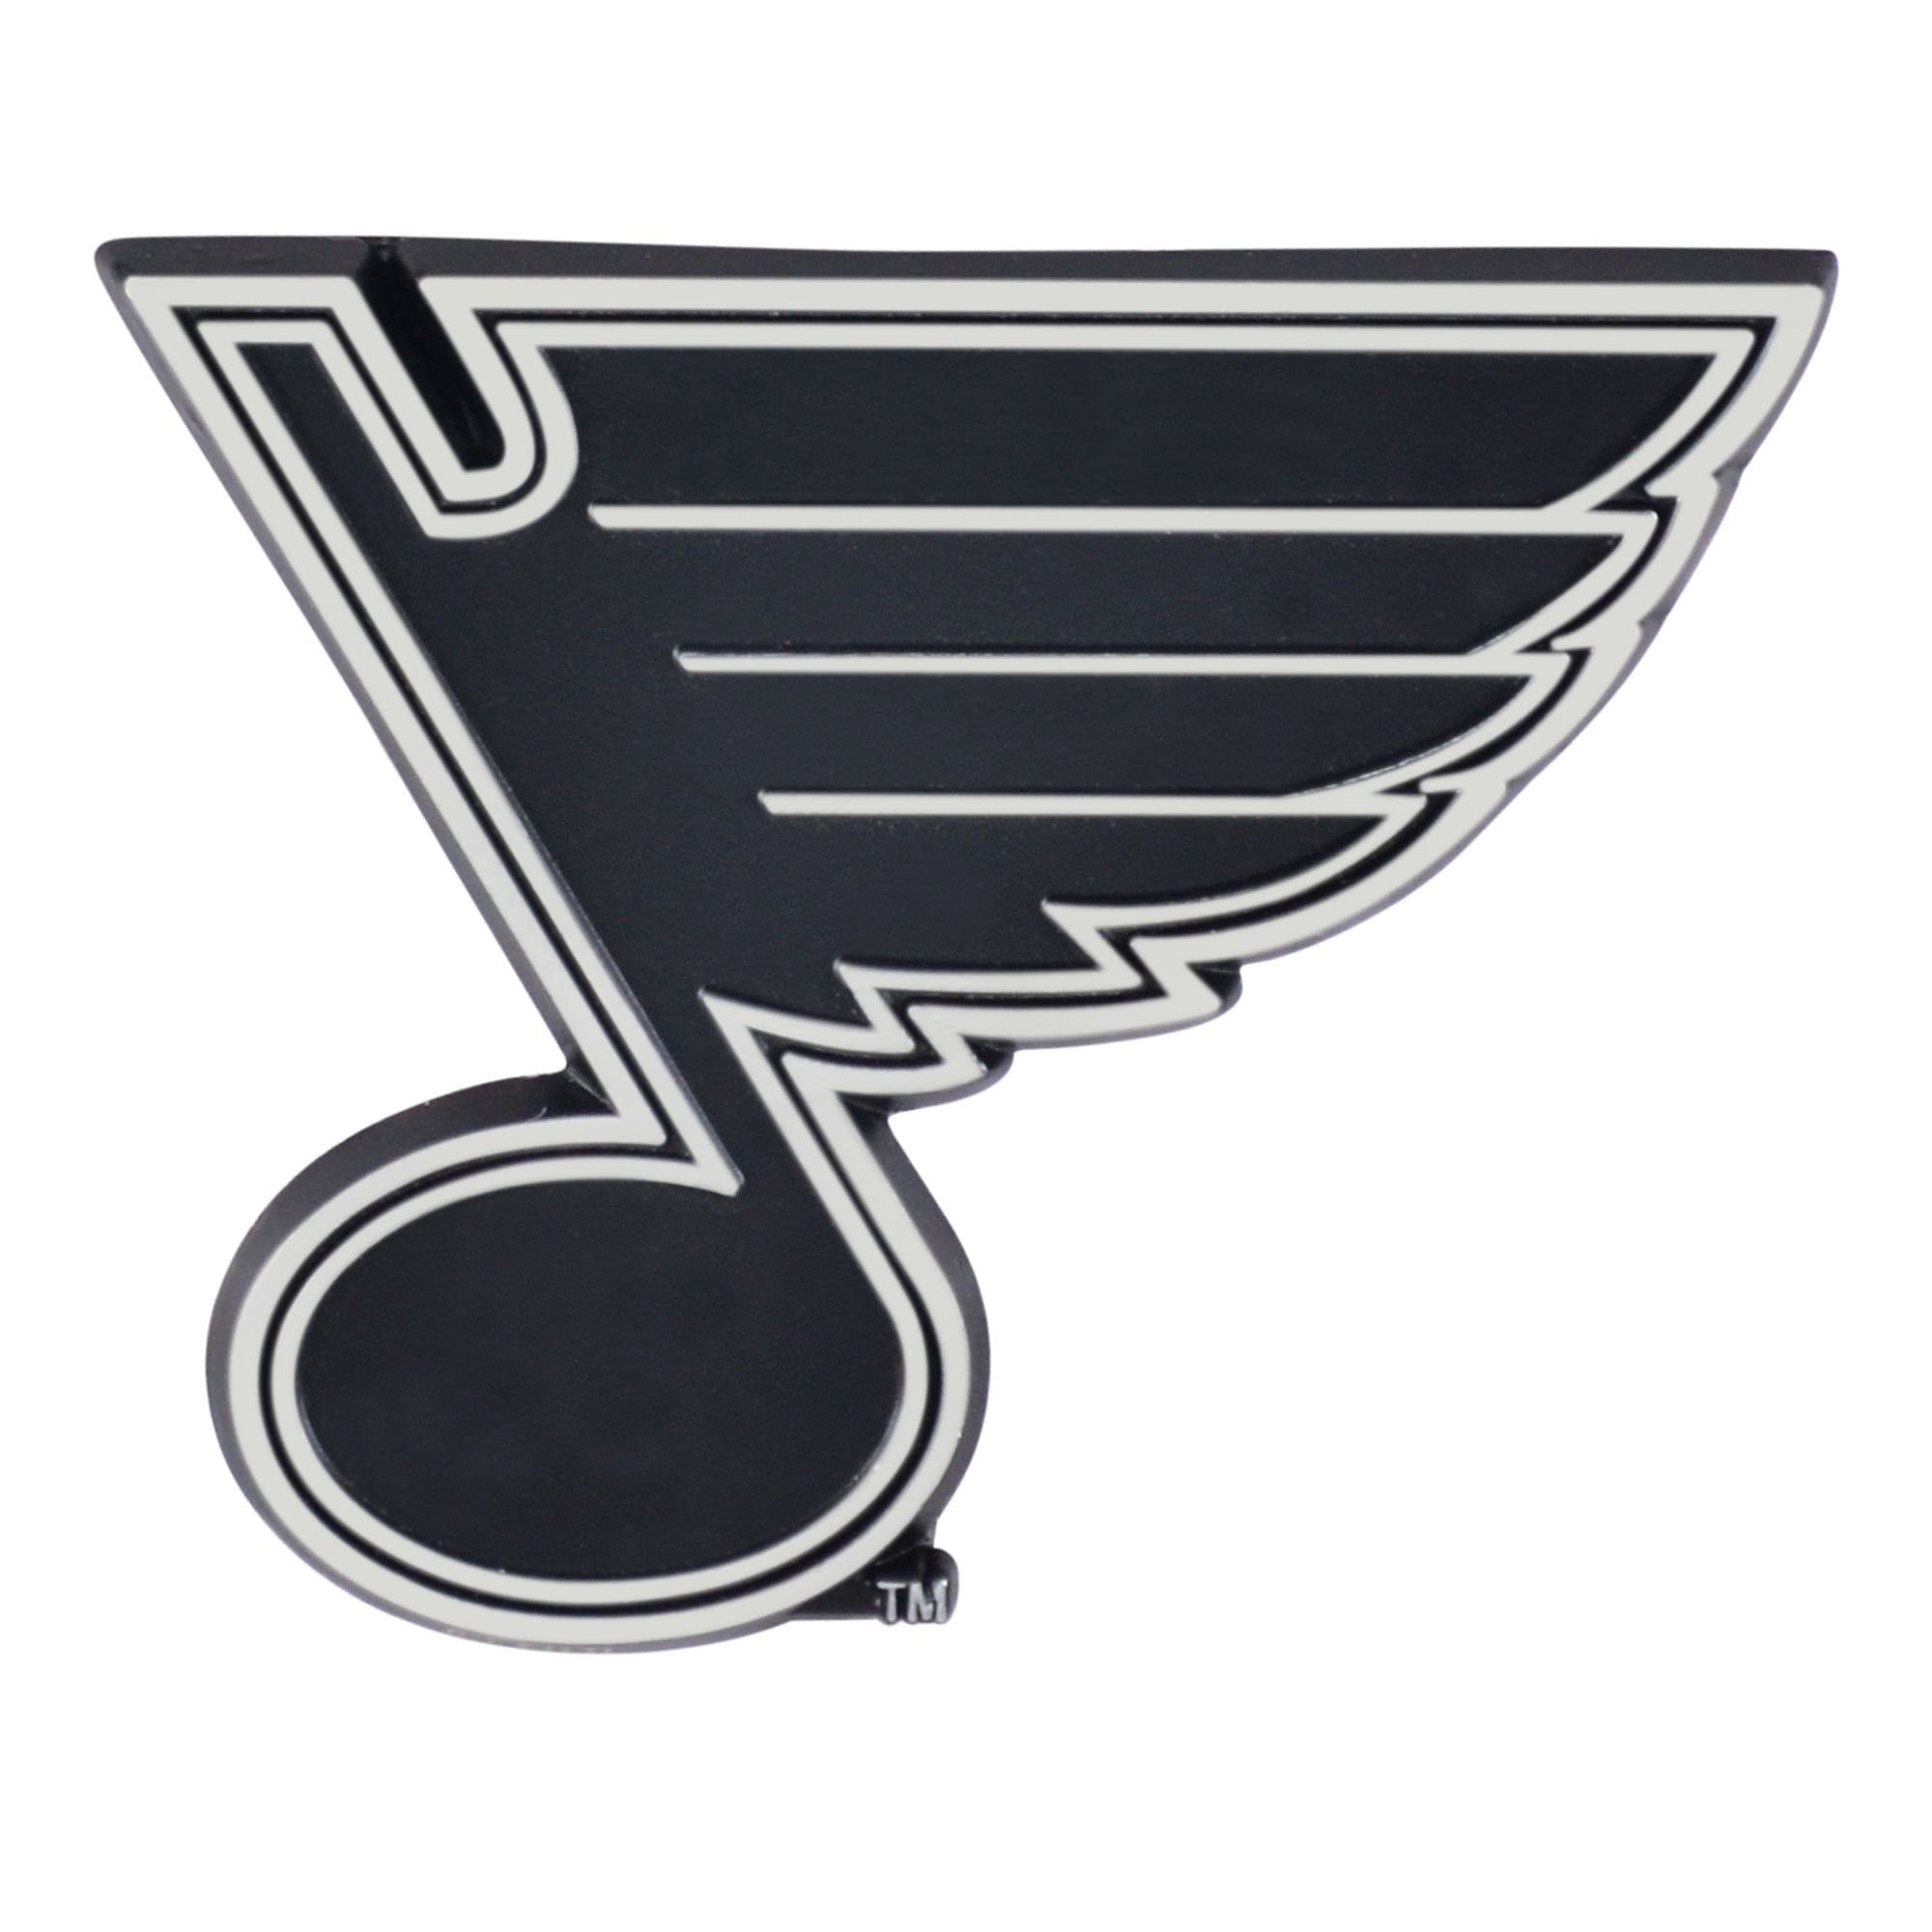 St. Louis Blues 3D Chrome Emblem